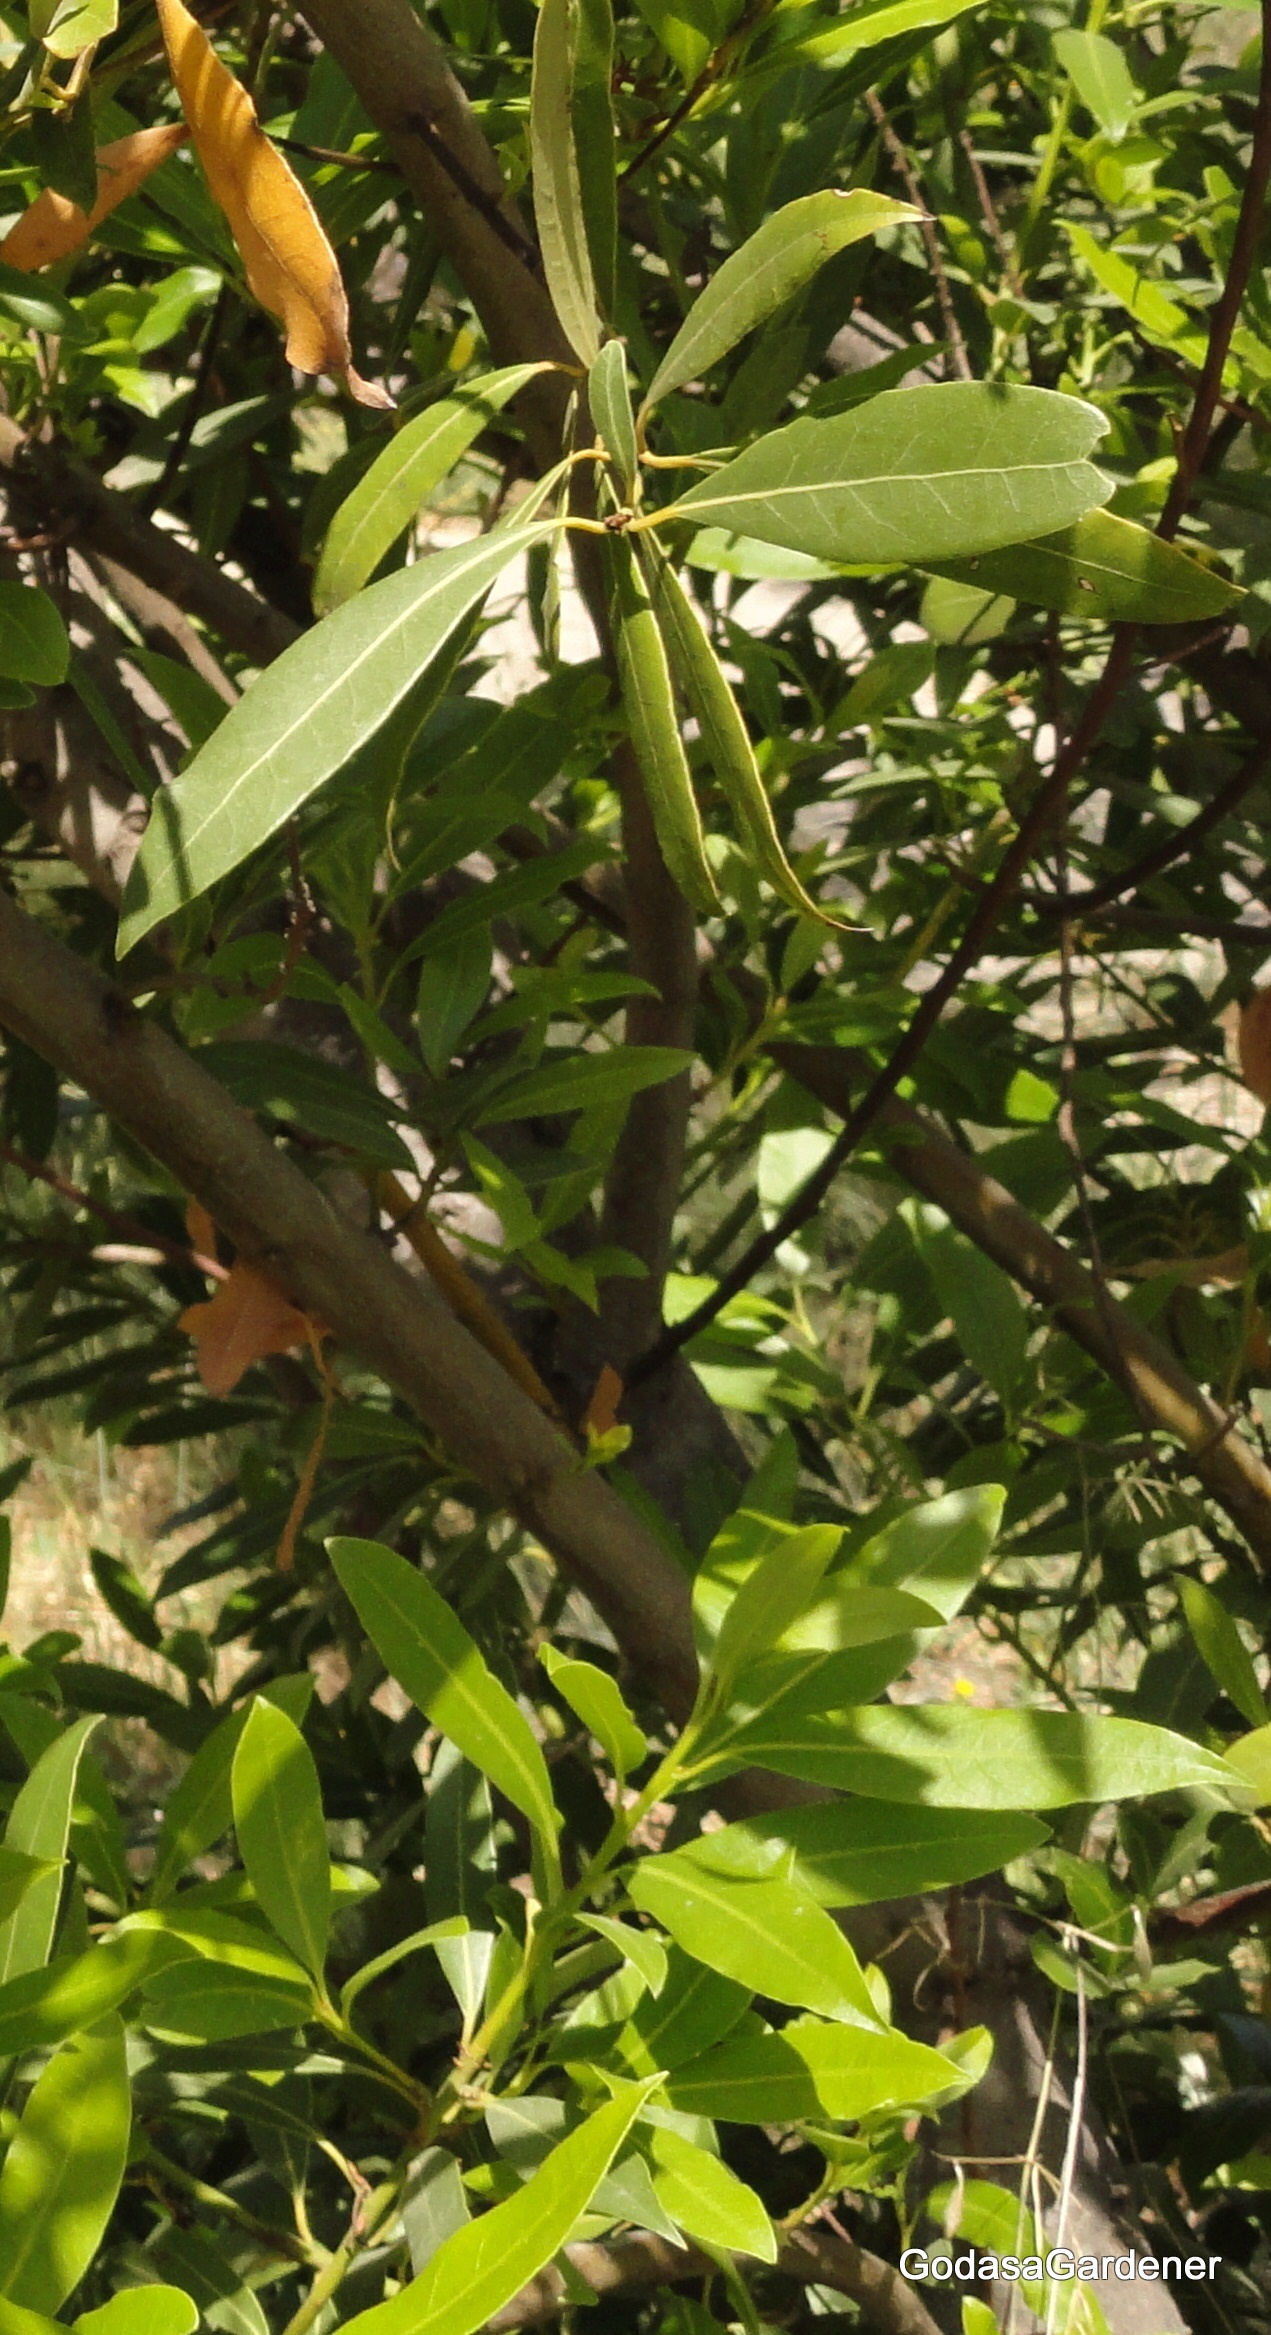 David Learns from the Laurel Tree | God as a Gardener